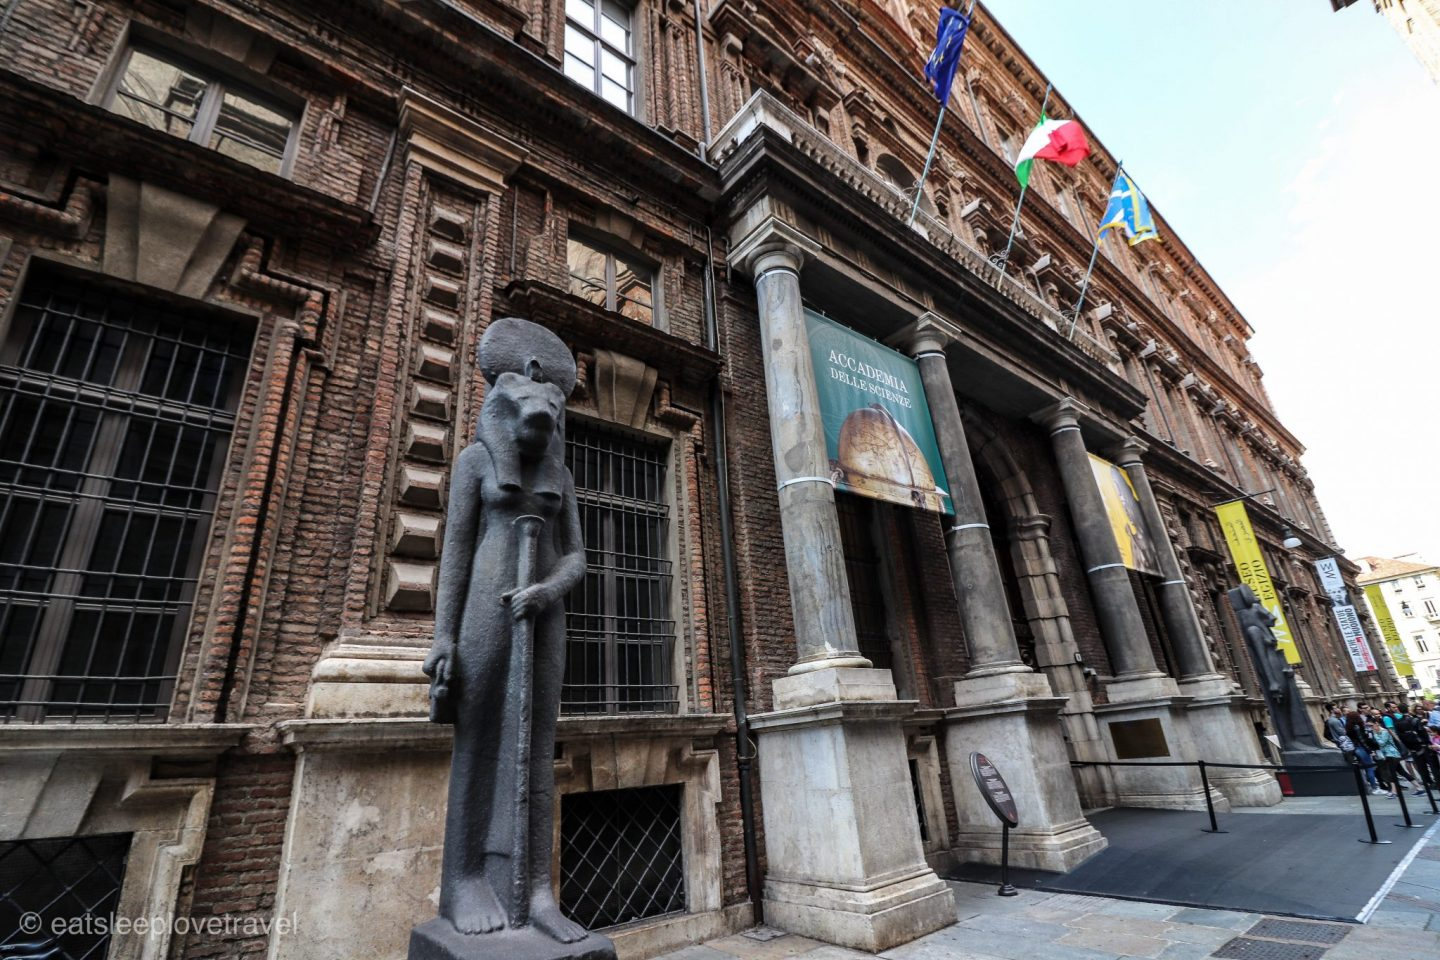 Museums in Turin